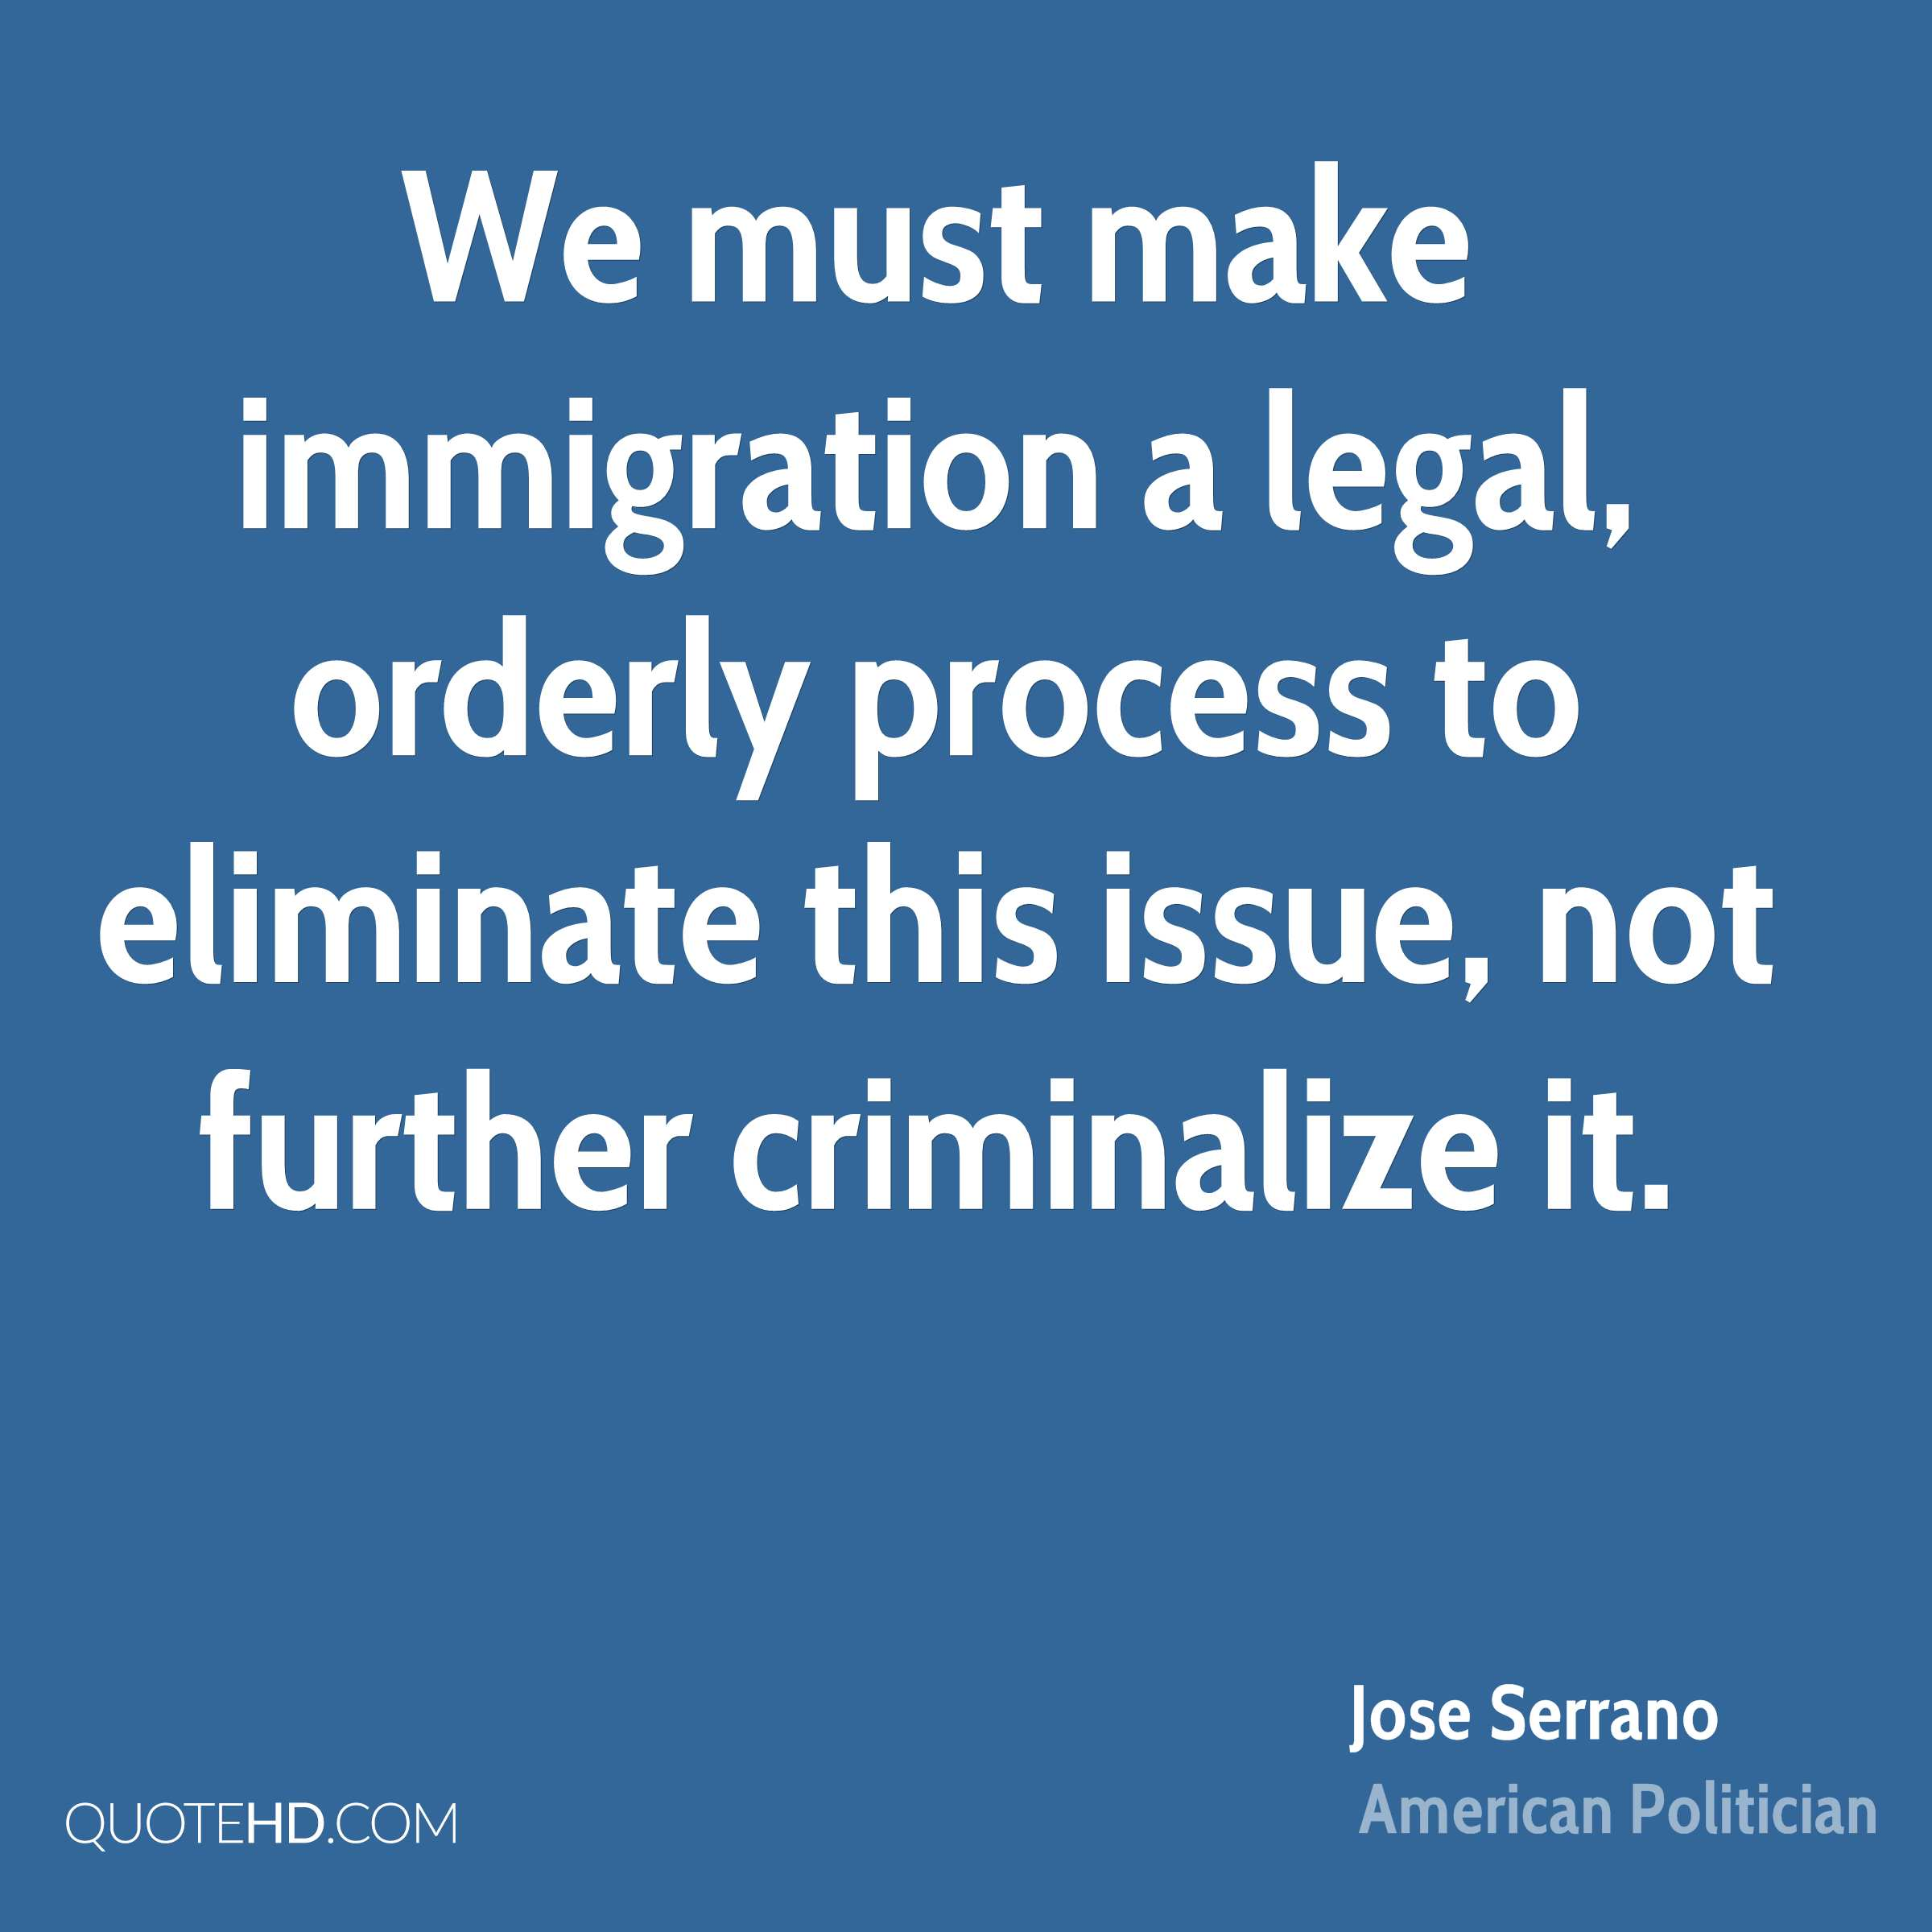 We must make immigration a legal, orderly process to eliminate this issue, not further criminalize it.